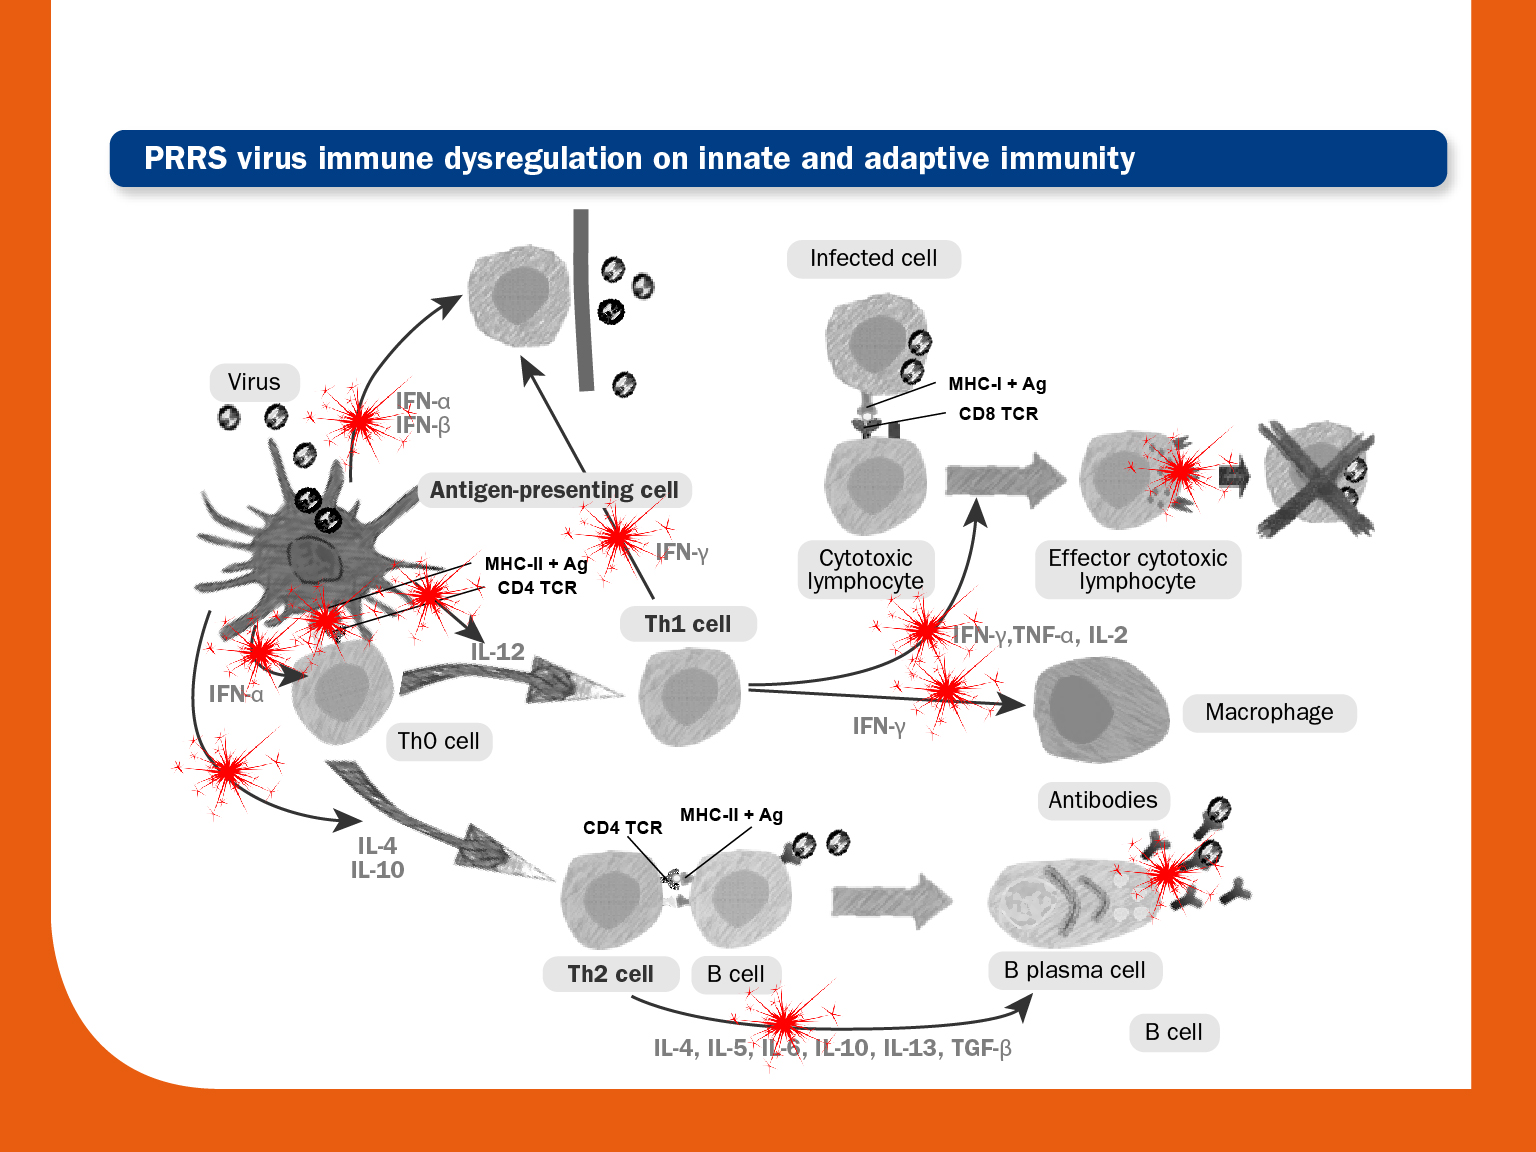 Immune dysregulation by PRRS virus | PRRS Control